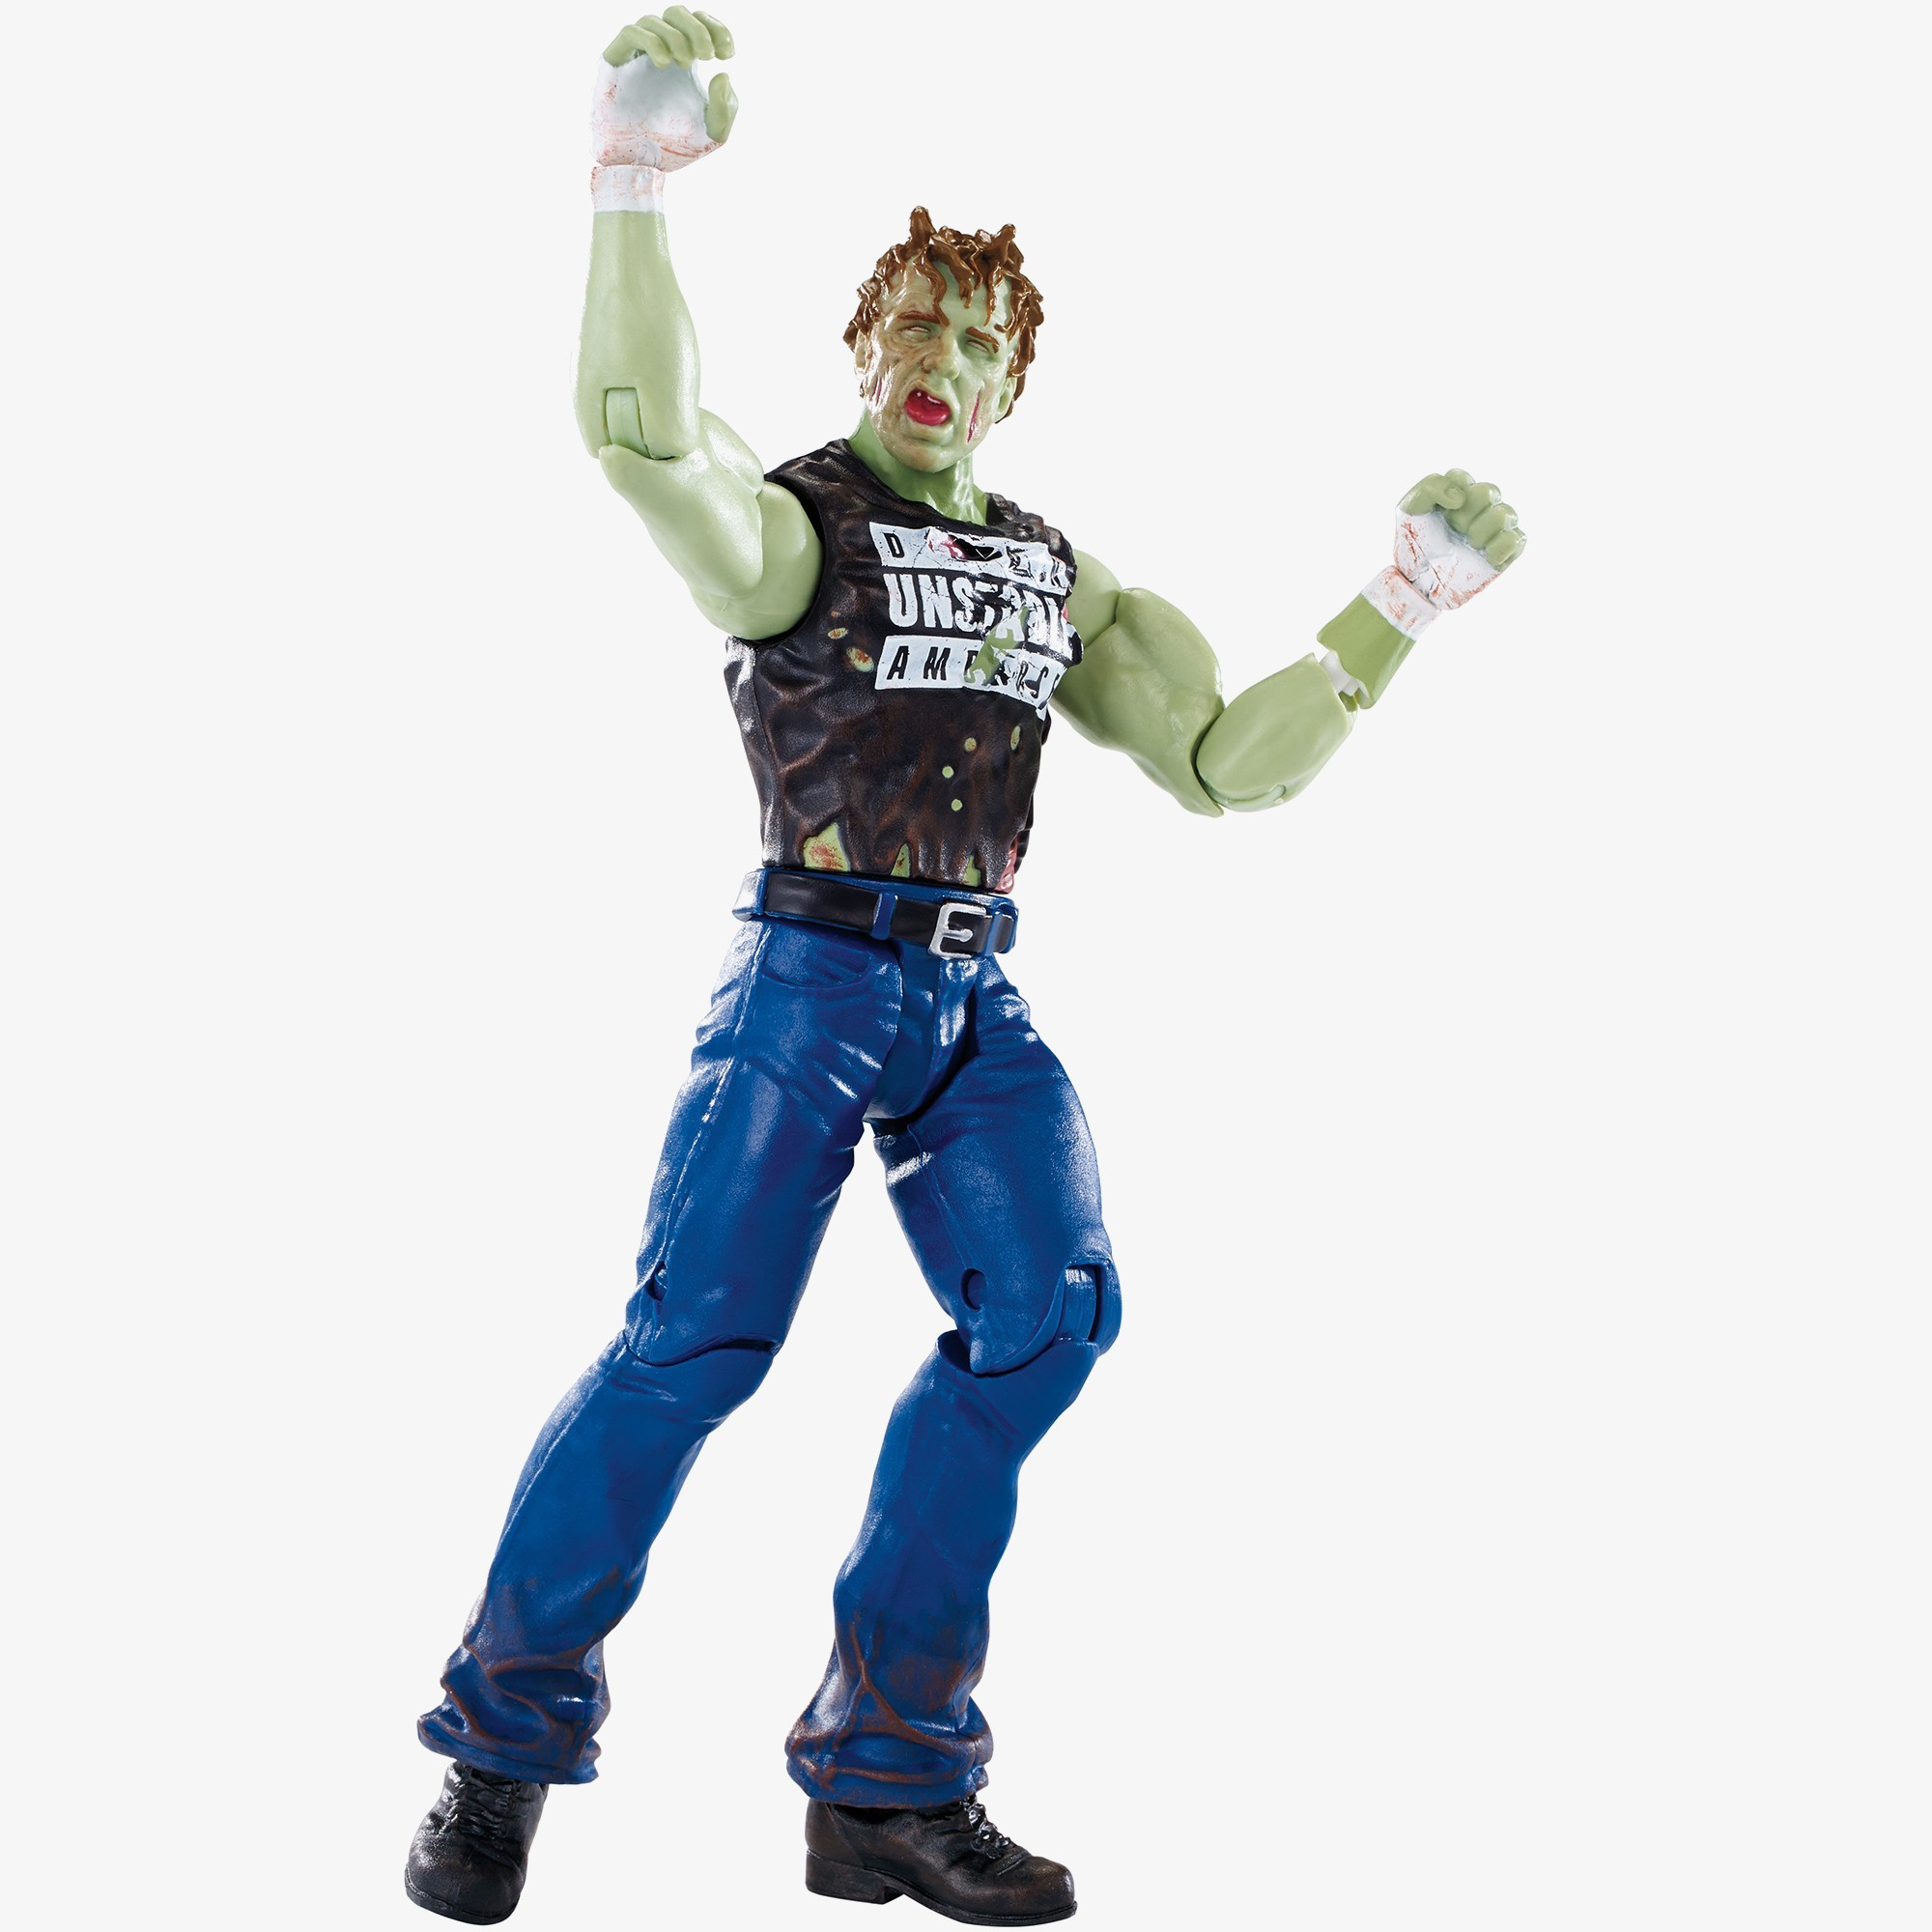 Dean Ambrose Wwe Zombies Series 1